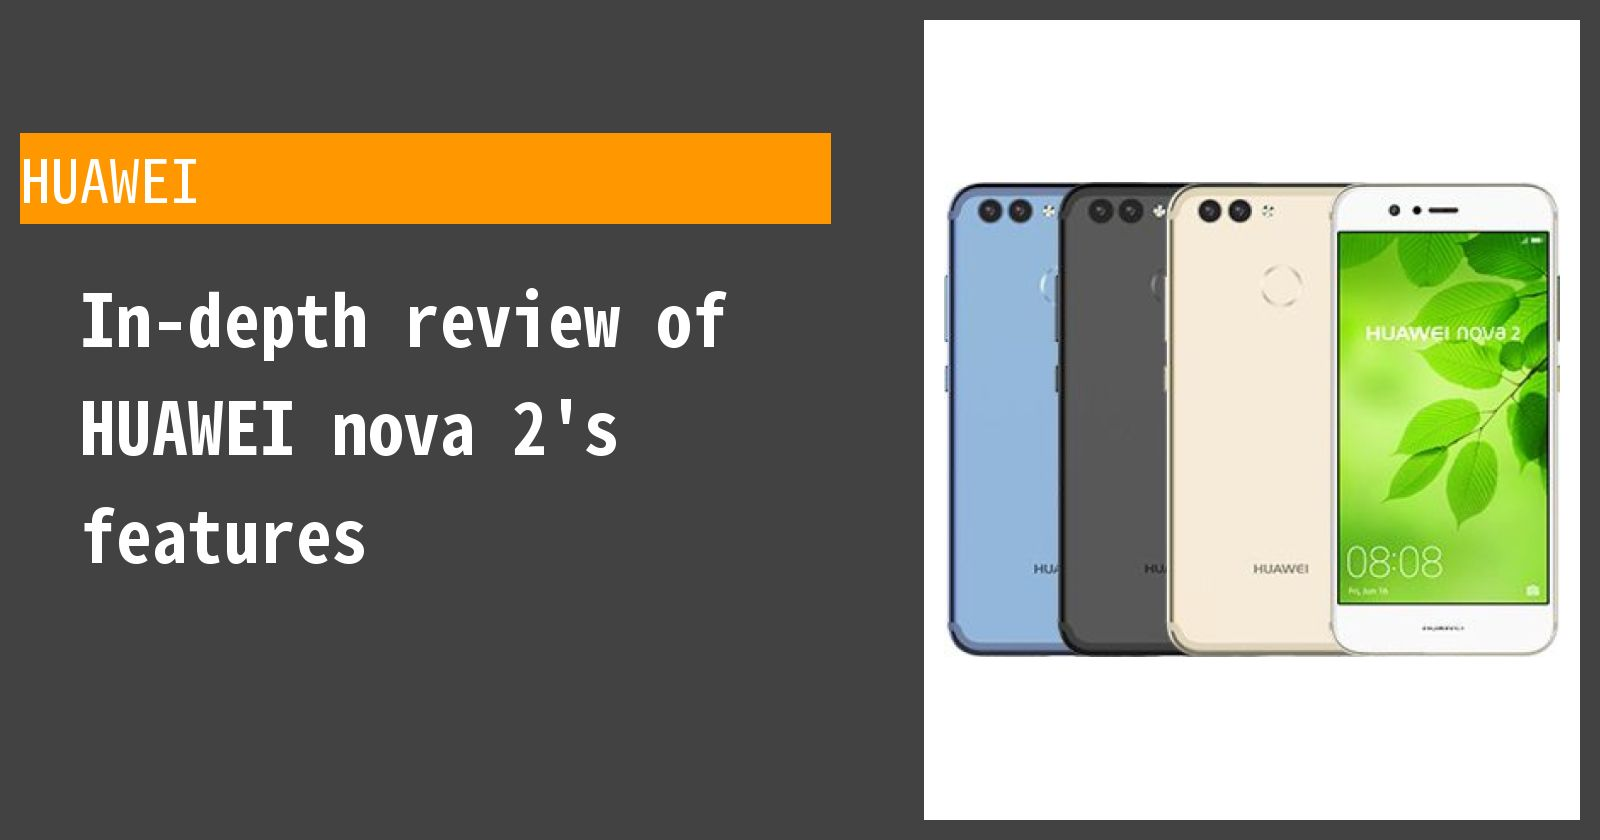 What are the advantages and disadvantages of HUAWEI nova 2